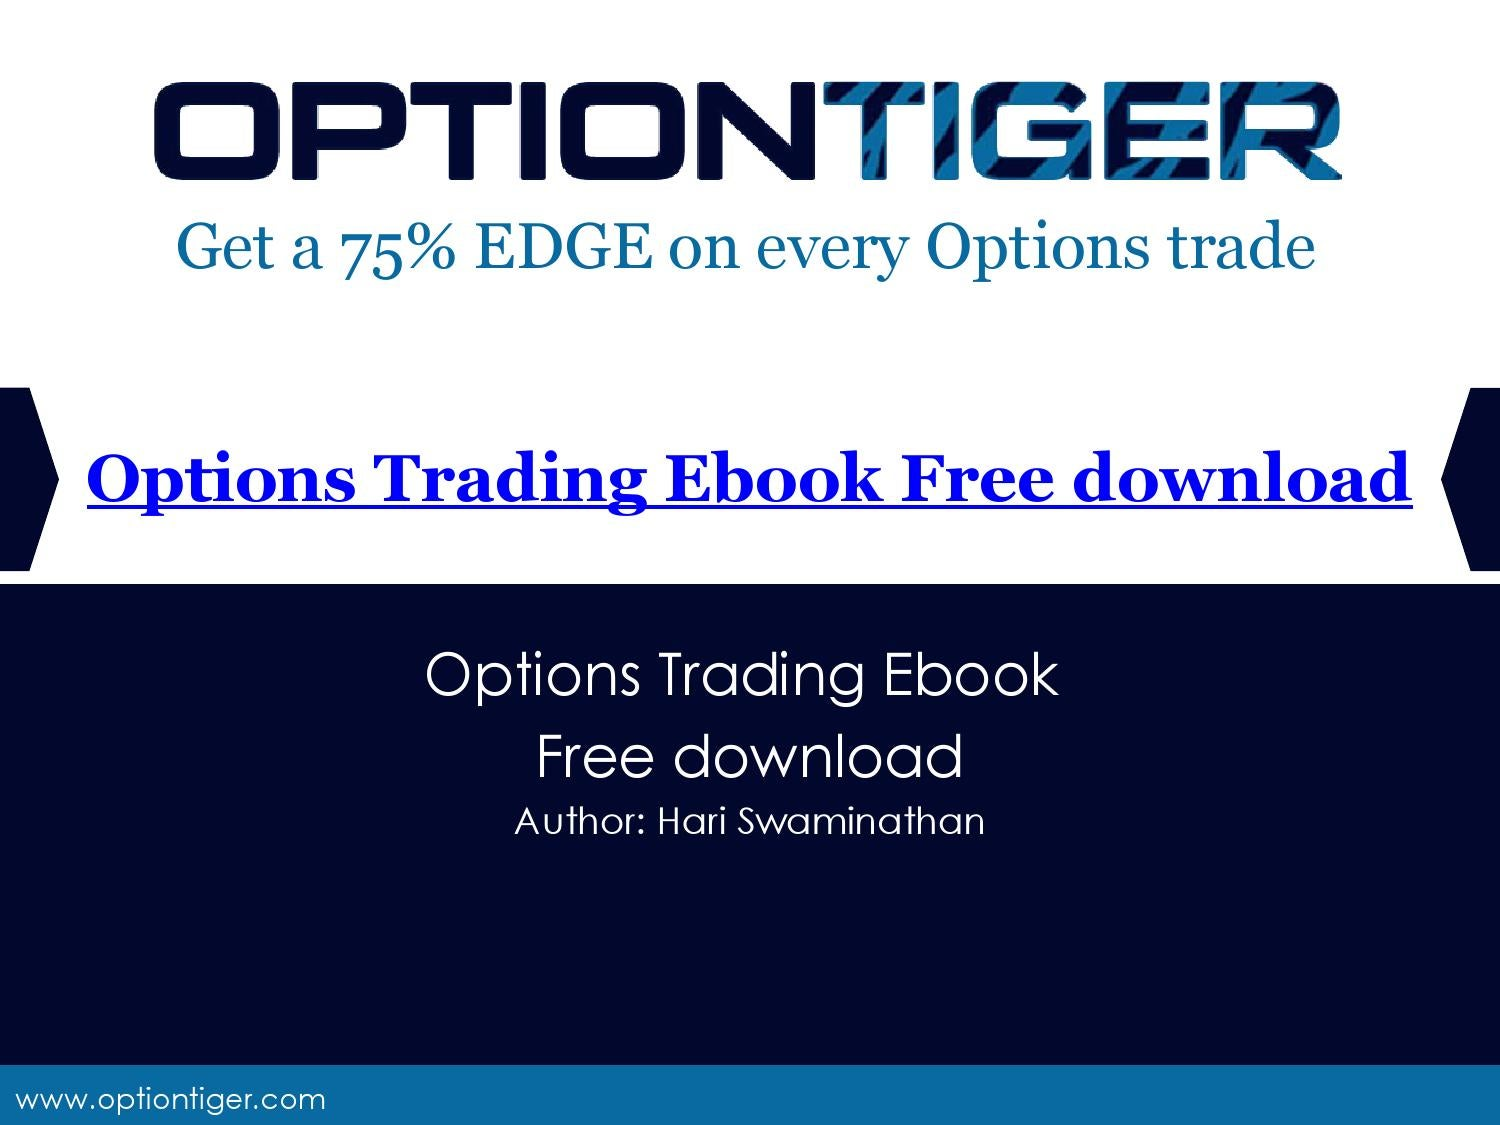 Options trading ebooks free